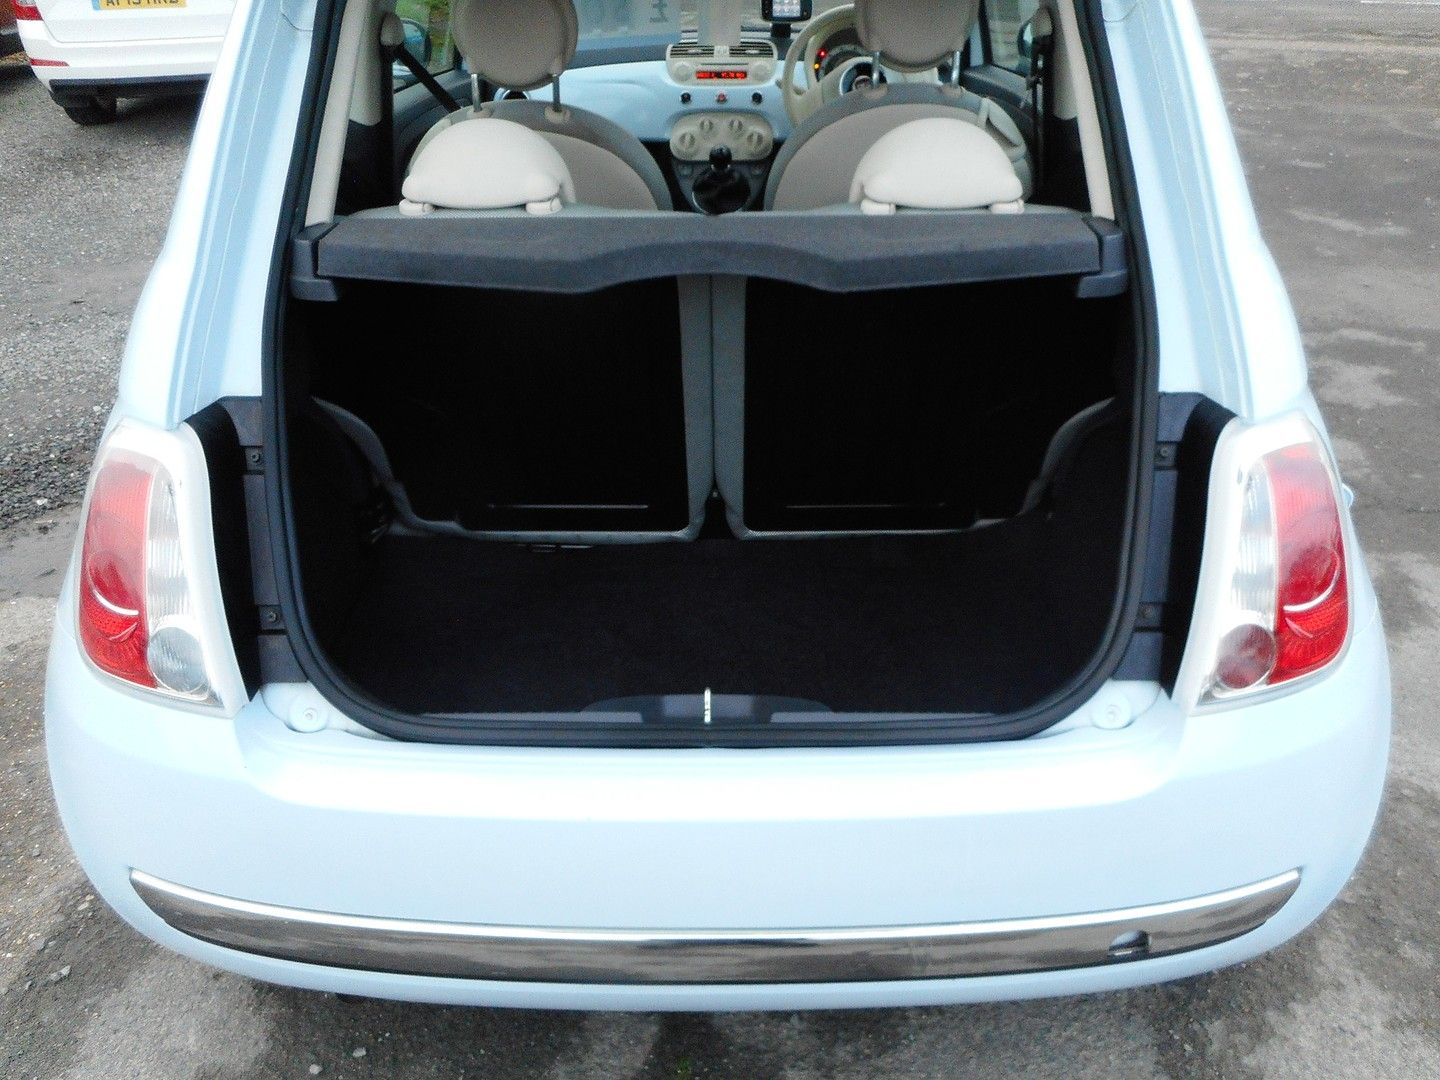 FIAT 500 1.2i Lounge (2010) - Picture 17